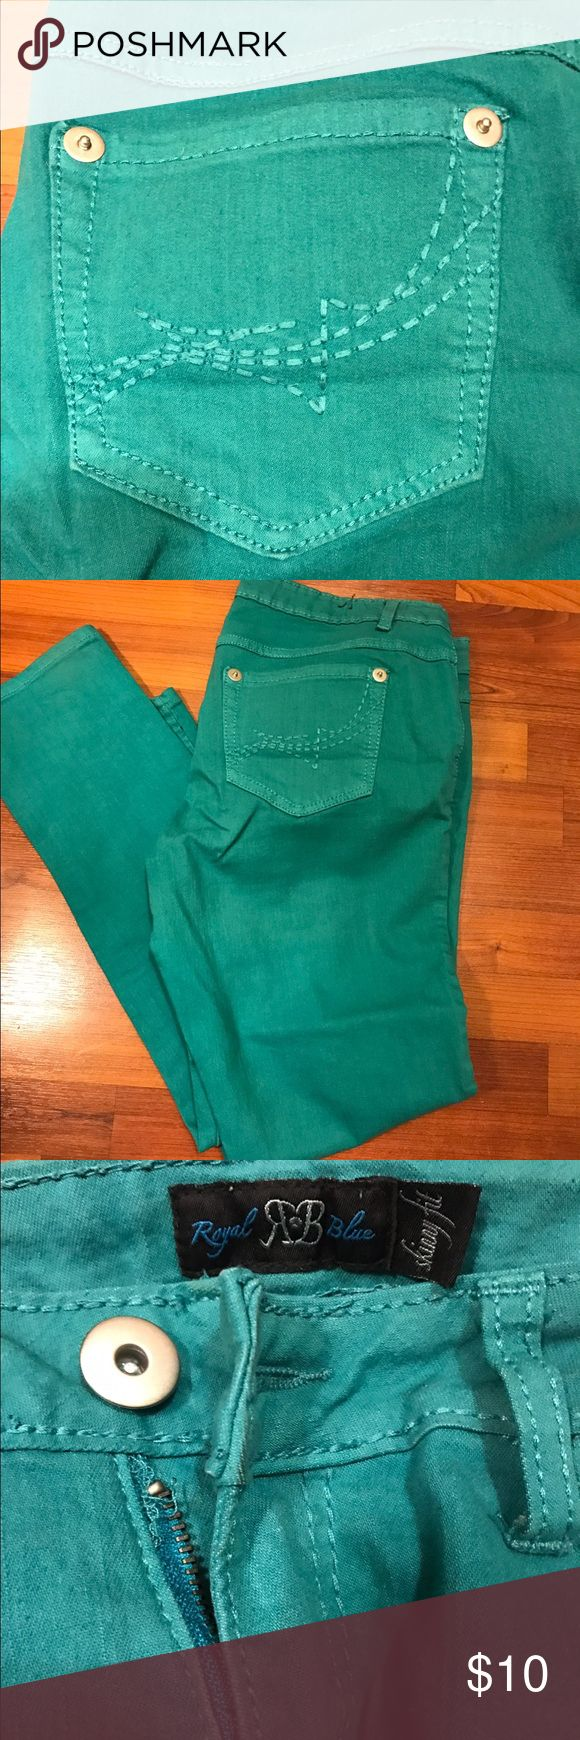 Skinny fit stretch turquoise jeans Skinny fit stretch turquoise jeans. Great condition Jeans Skinny